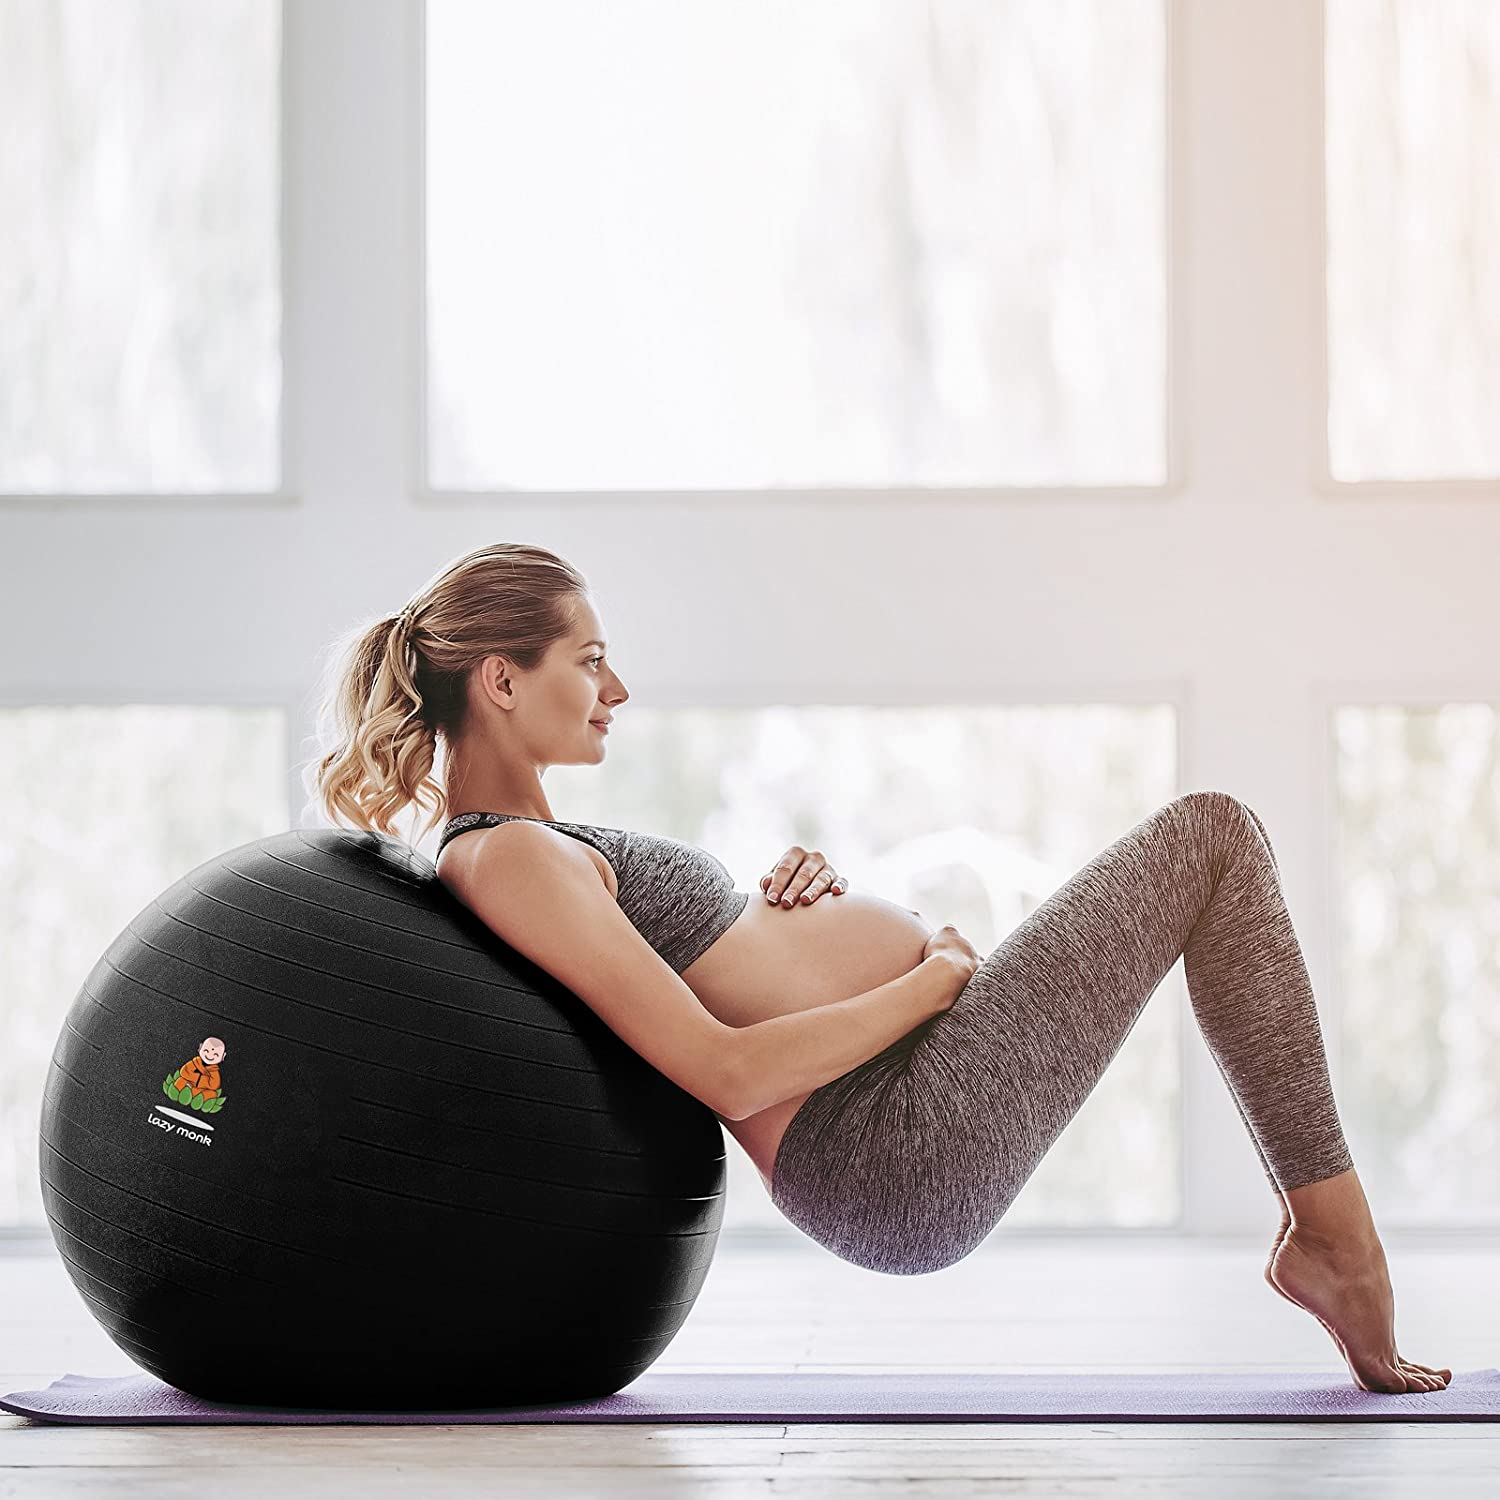 Amazon.com: Lazy Monk Exercise Ball, Fitness Workout & Chair ...